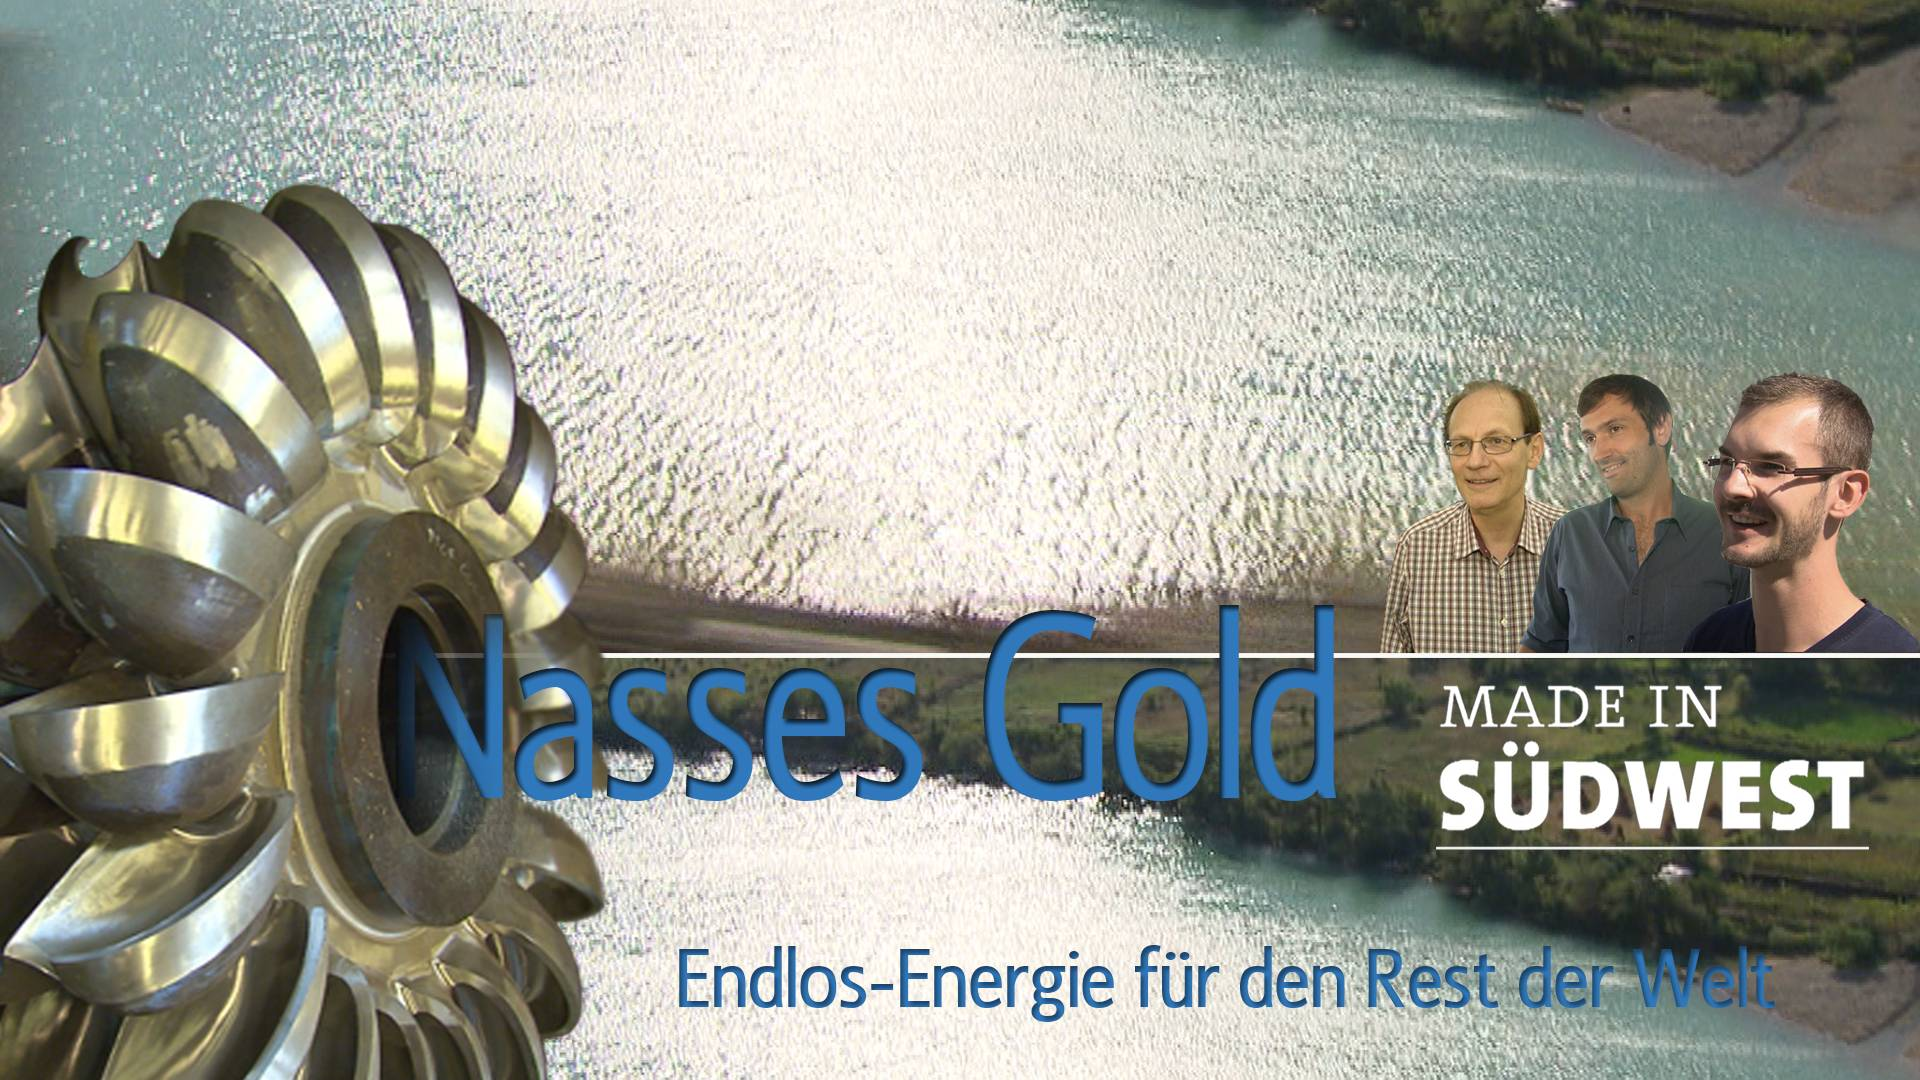 Nasses Gold